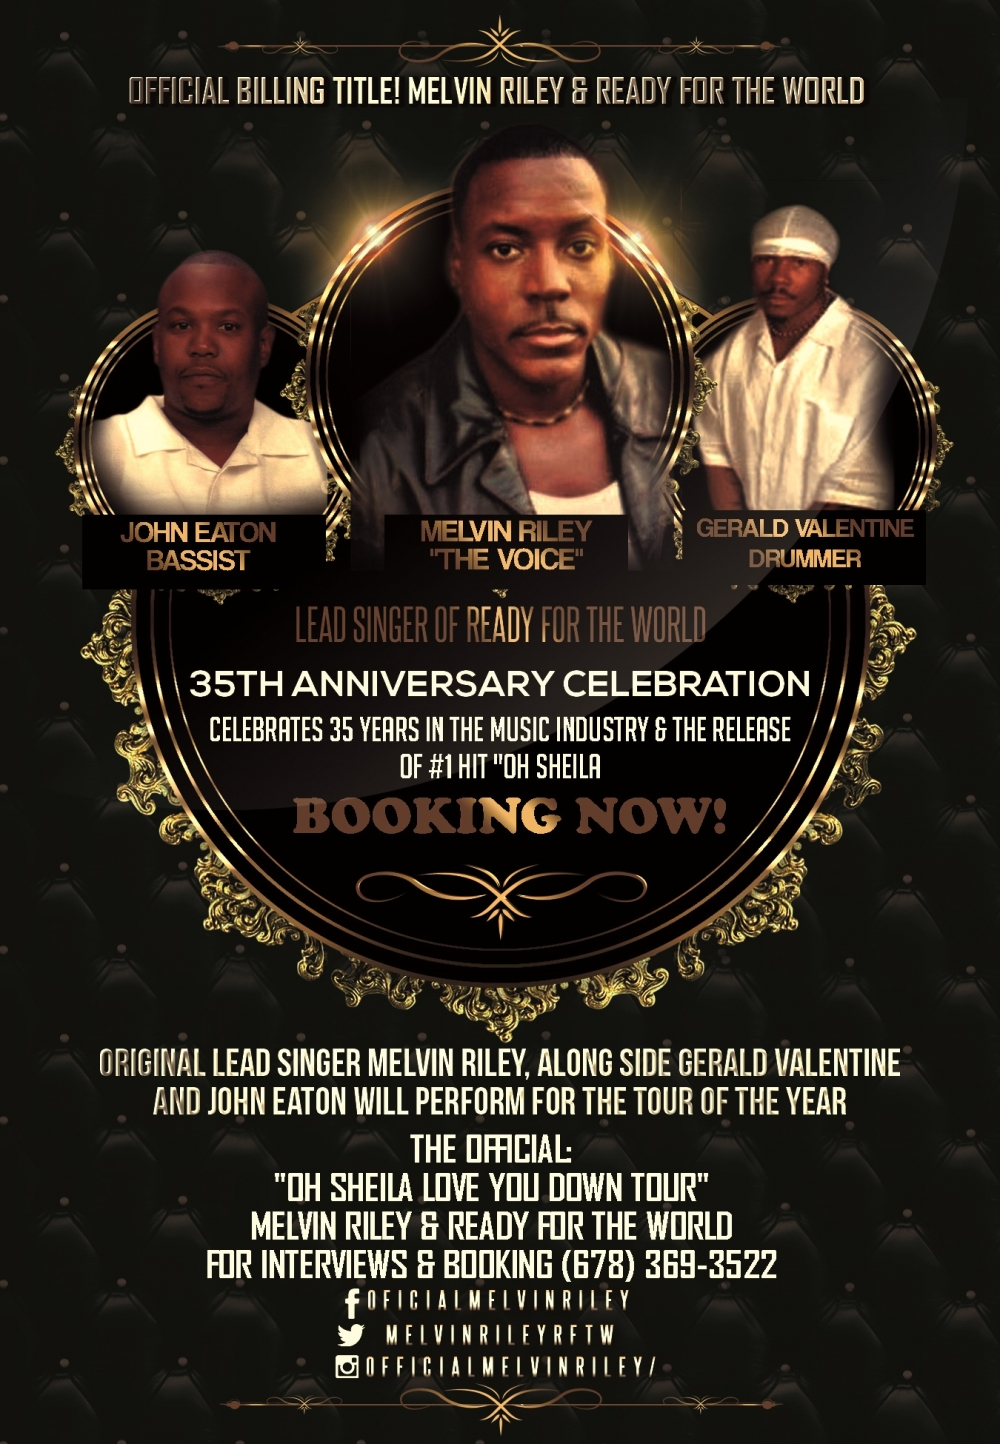 melvin-riley-celebrates-35-years-in-the-music-industry-and-anniversary-tour